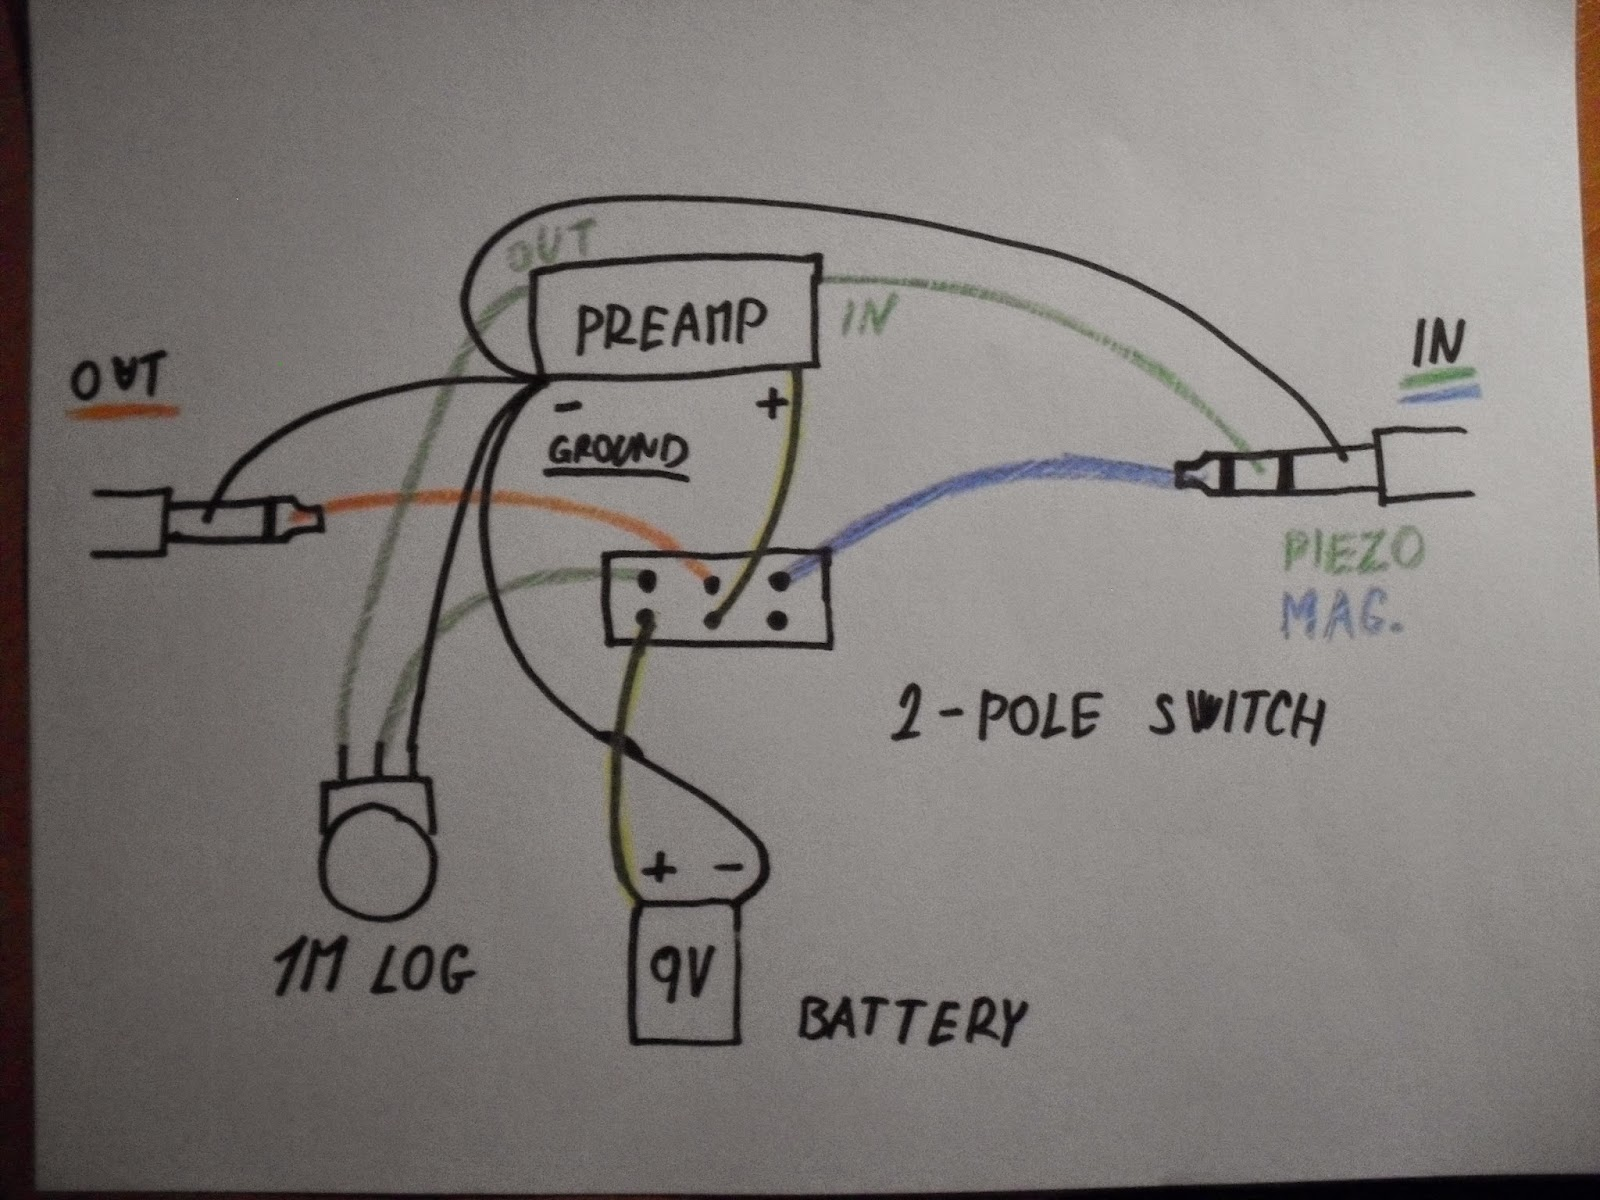 diy electric guitar projects piezo pickup preamplifierpicture 3 final version of the schematic